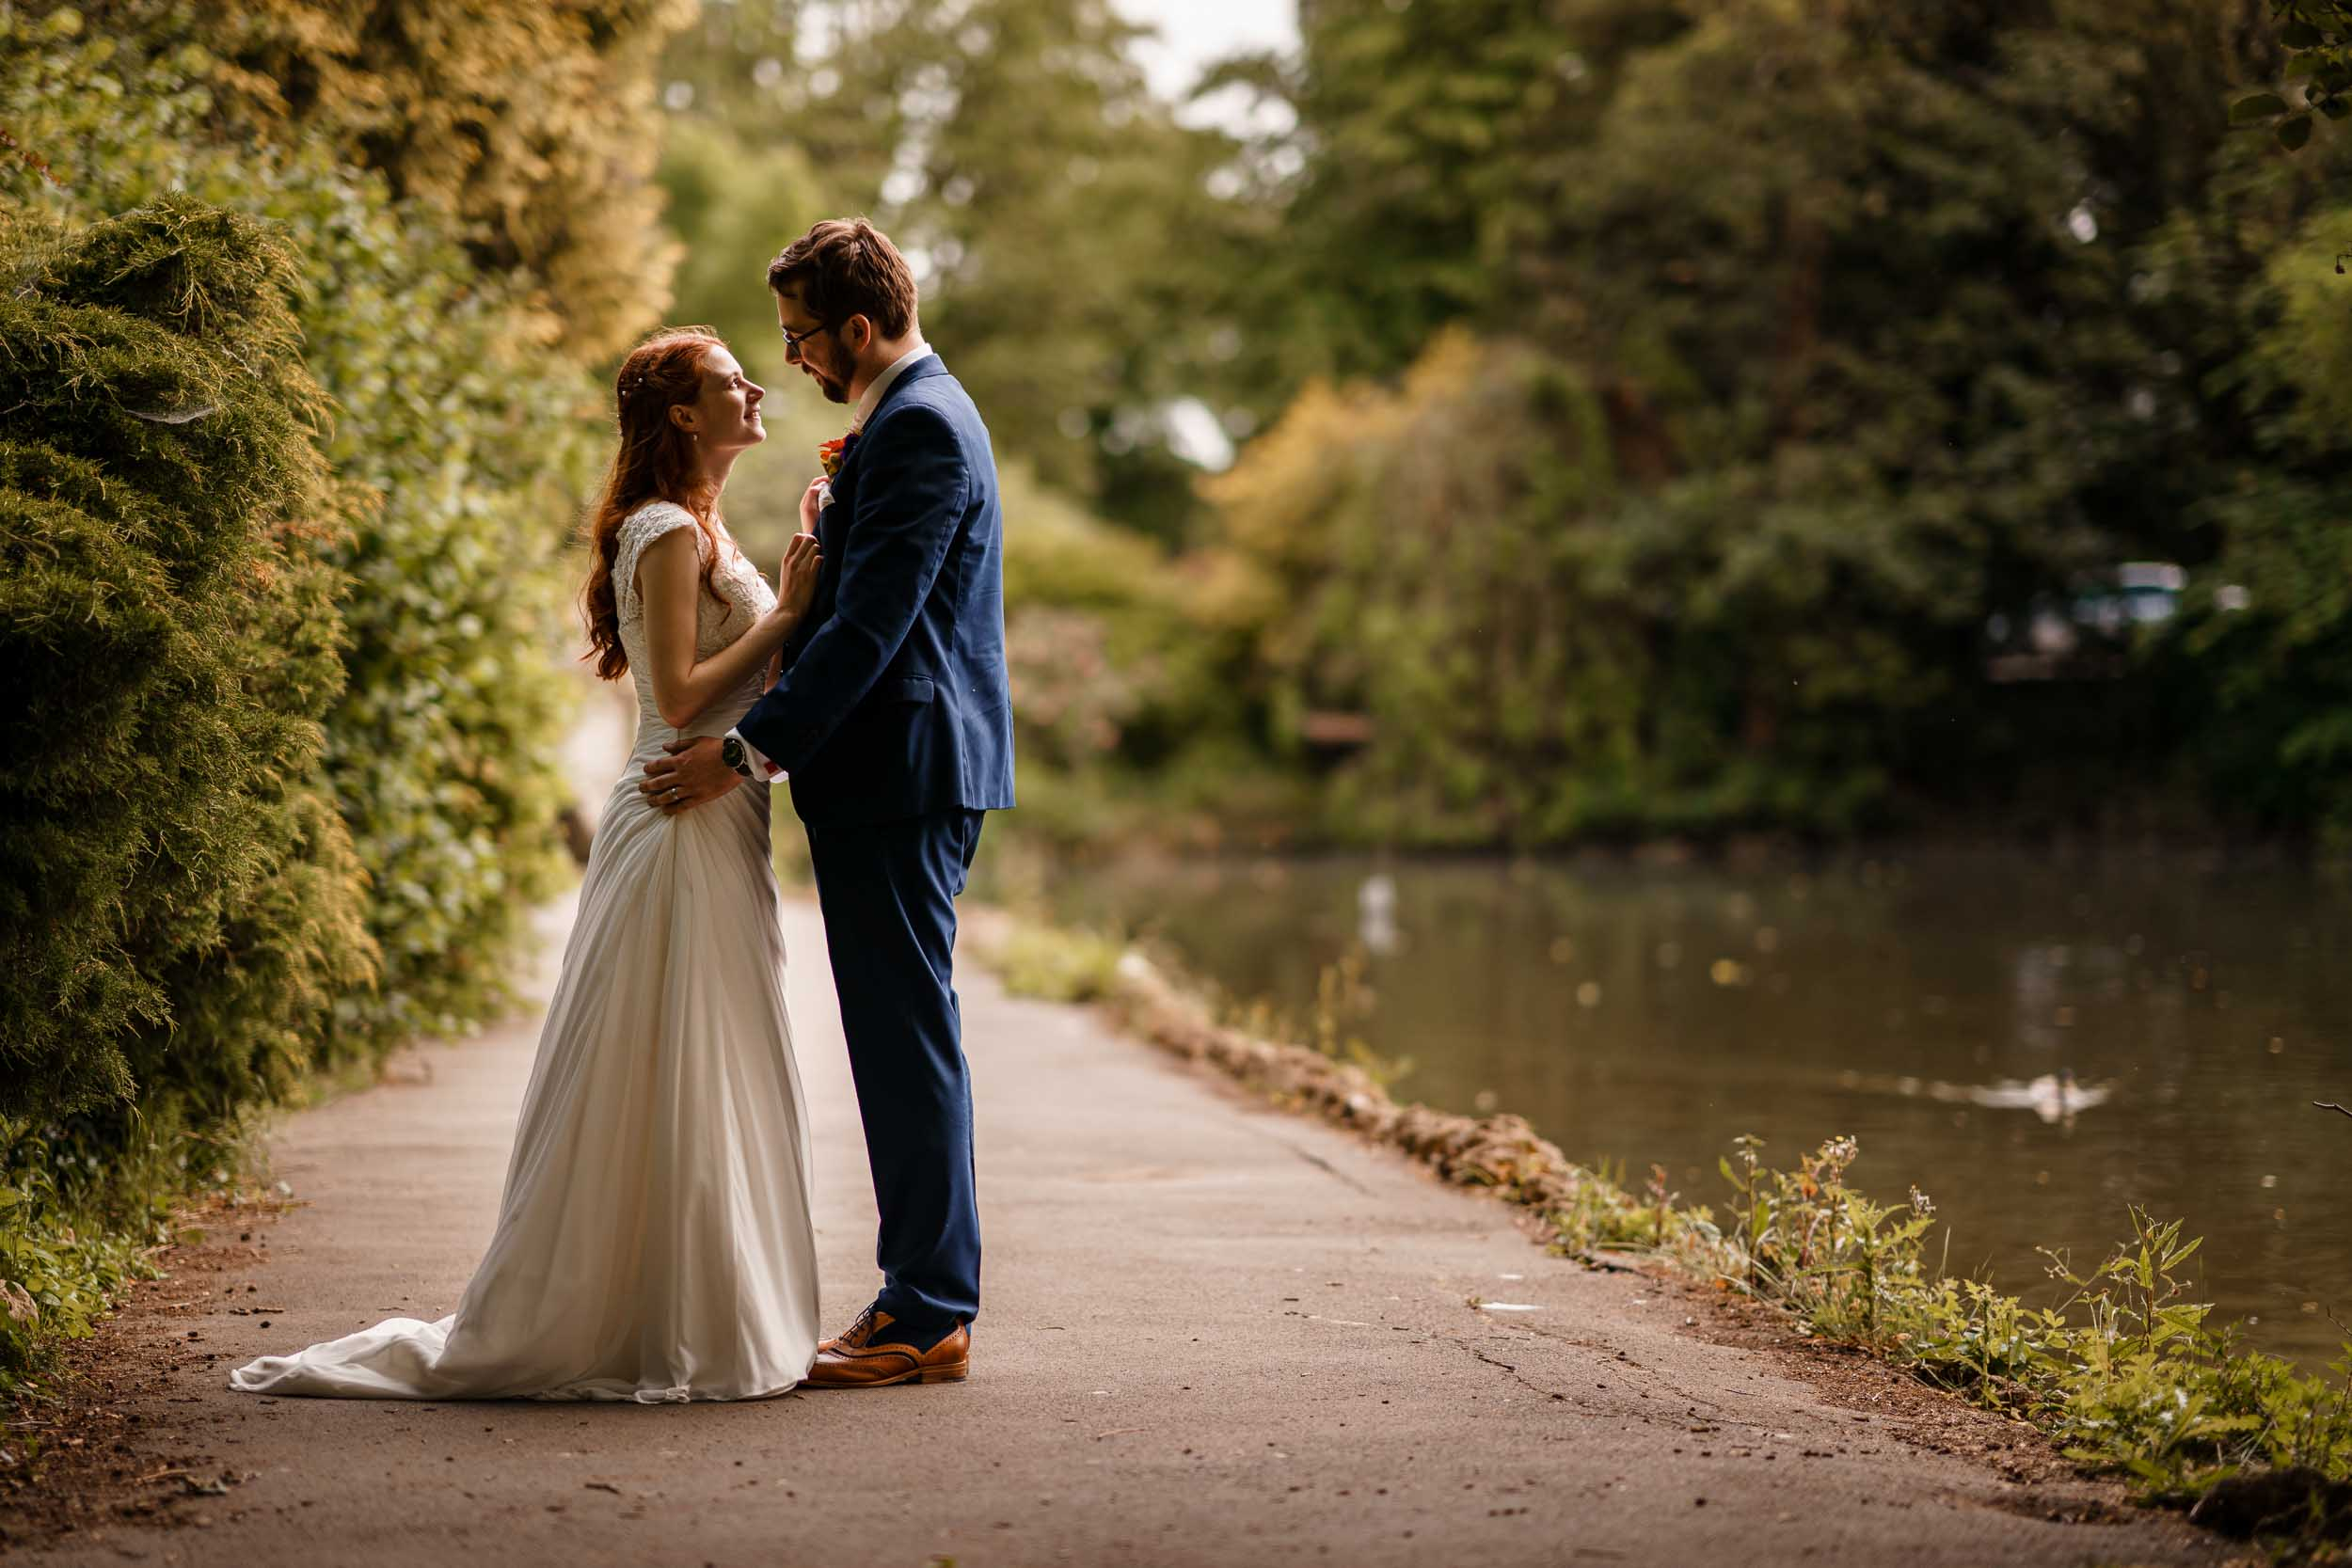 Wedding photographers in Herefordshire, Herefordshire Wedding Photographer - David Liebst Photography